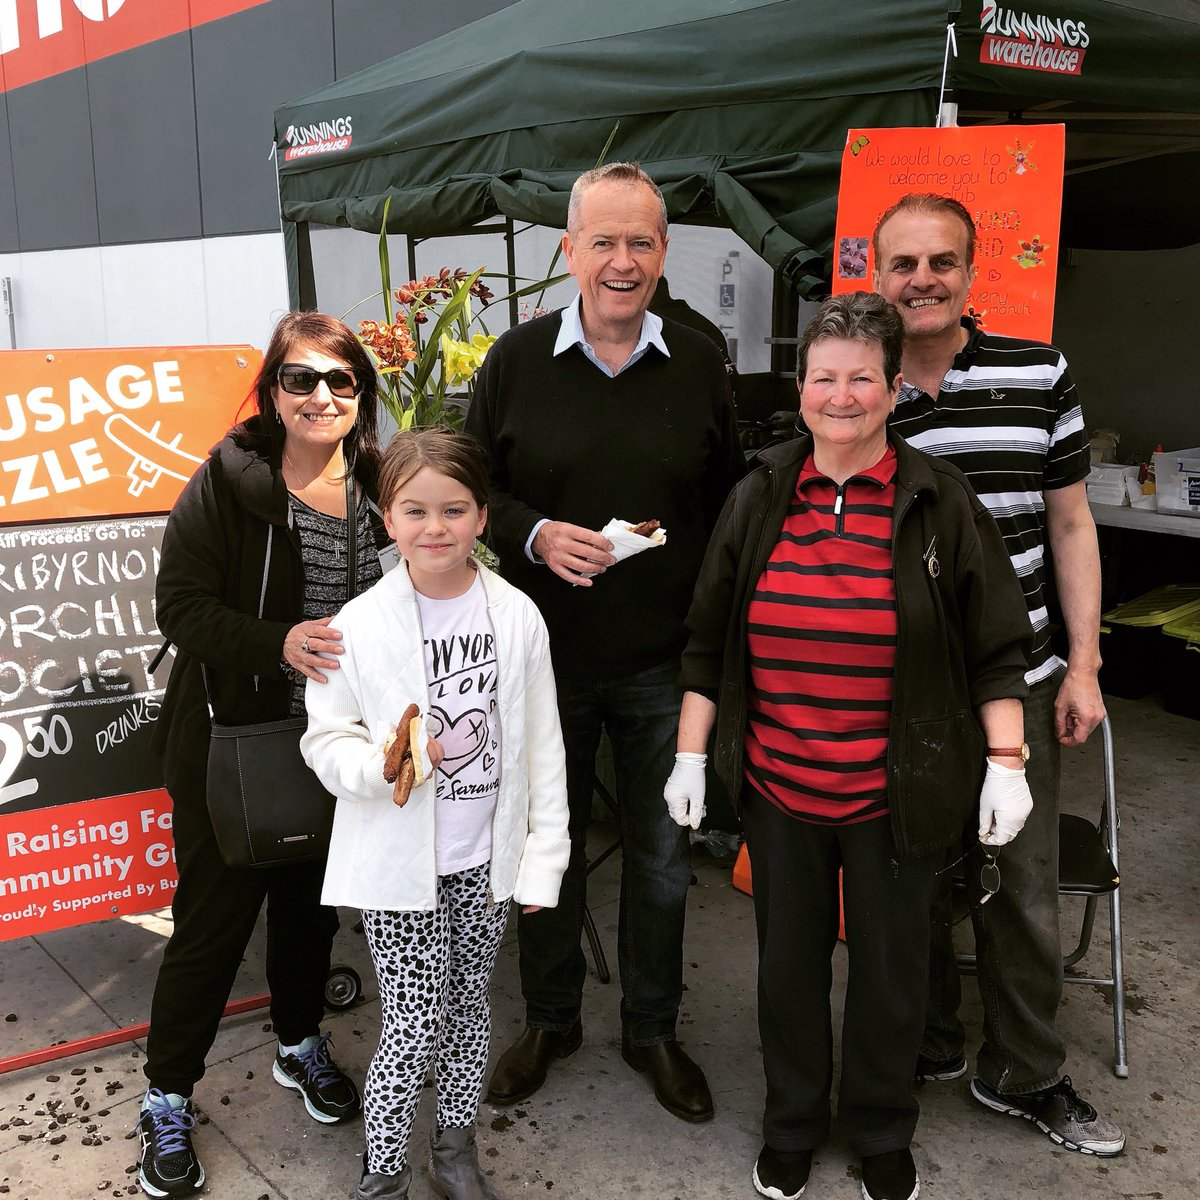 A trip to Bunnings isn't complete without a sausage sizzle. Thanks to the team raising funds for the Maribyrnong Orchid Society.